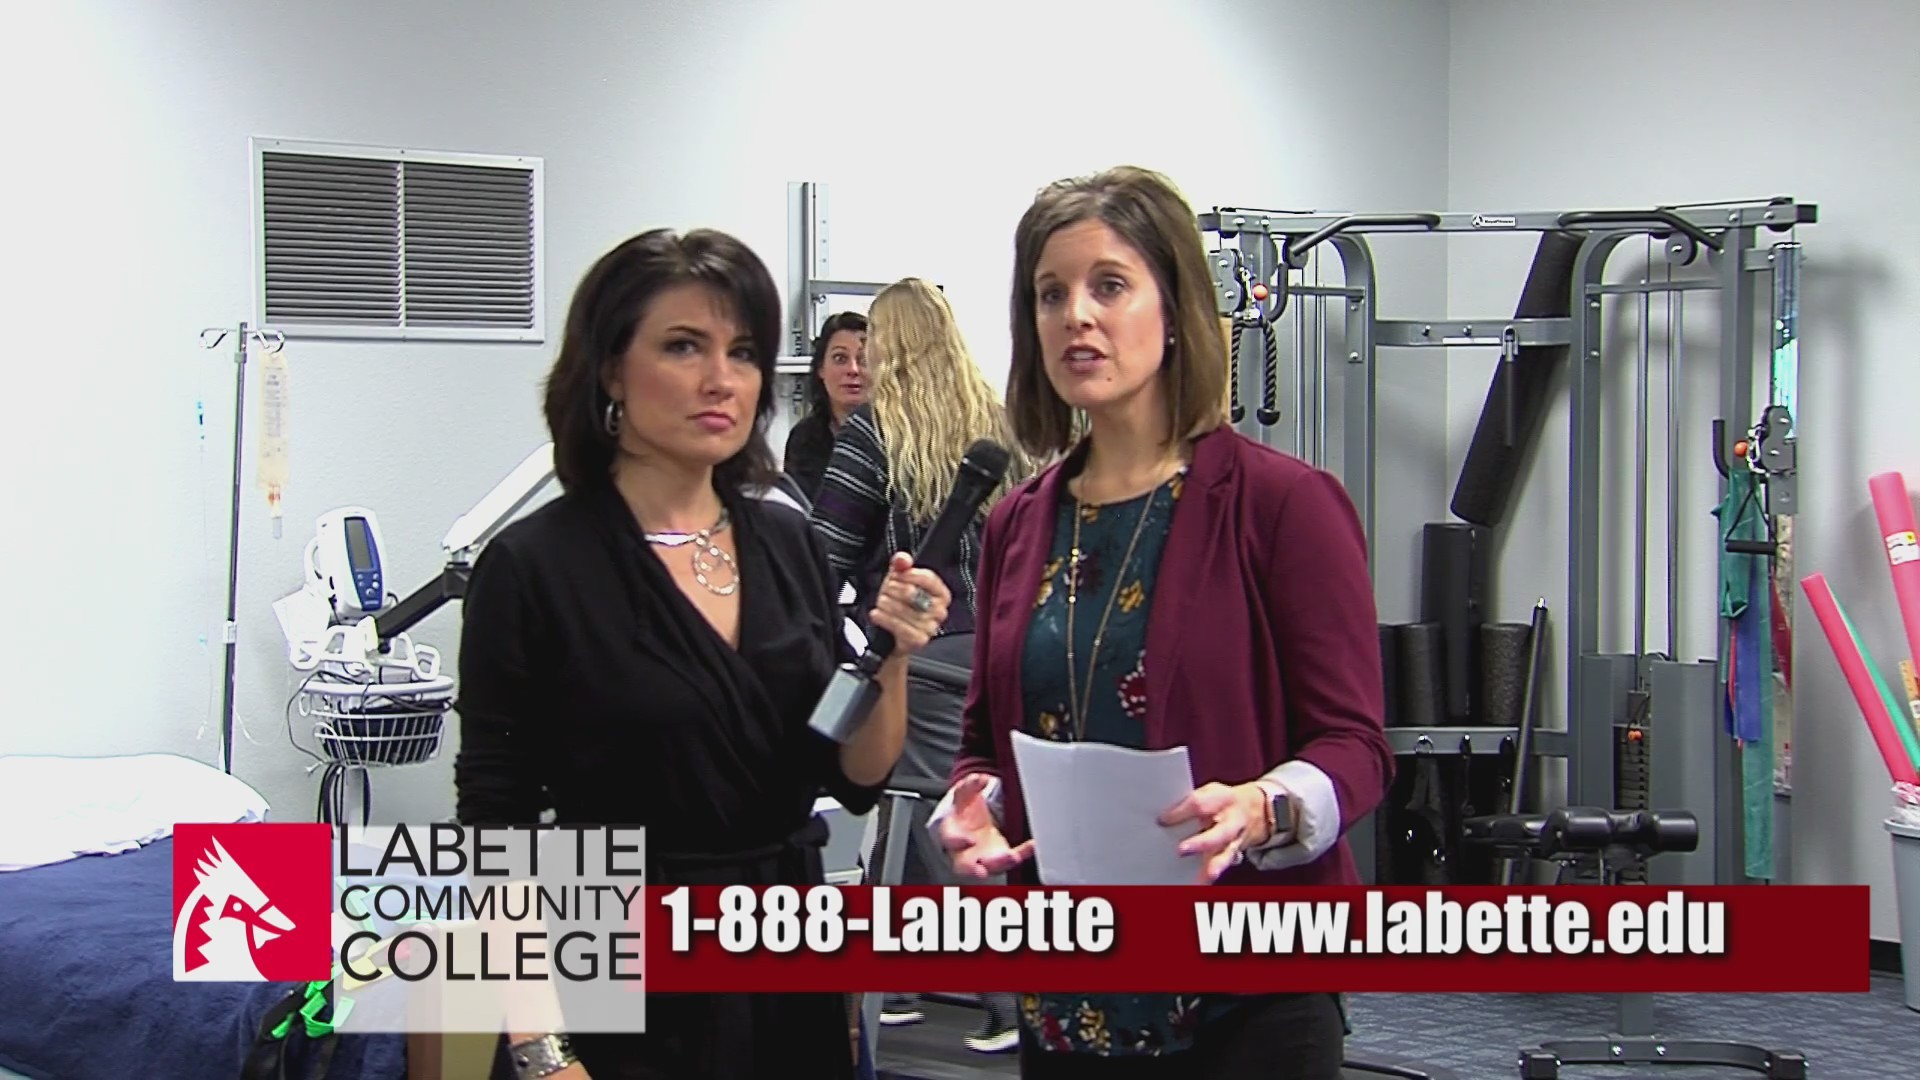 Labette Community College - Physical Therapy (022619)